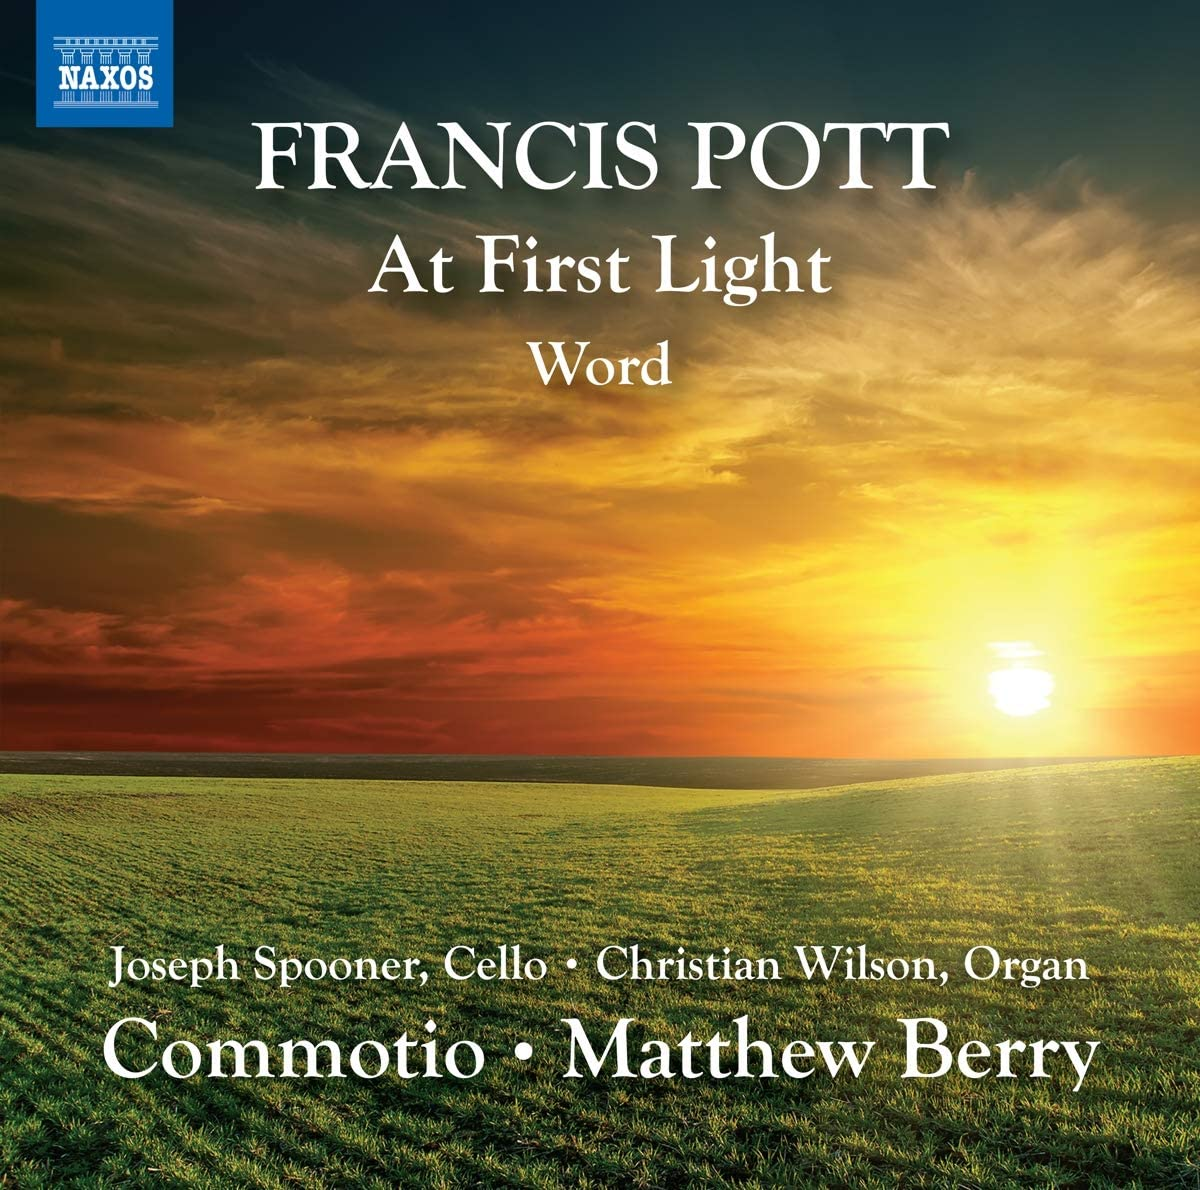 Review of POTT At First Light